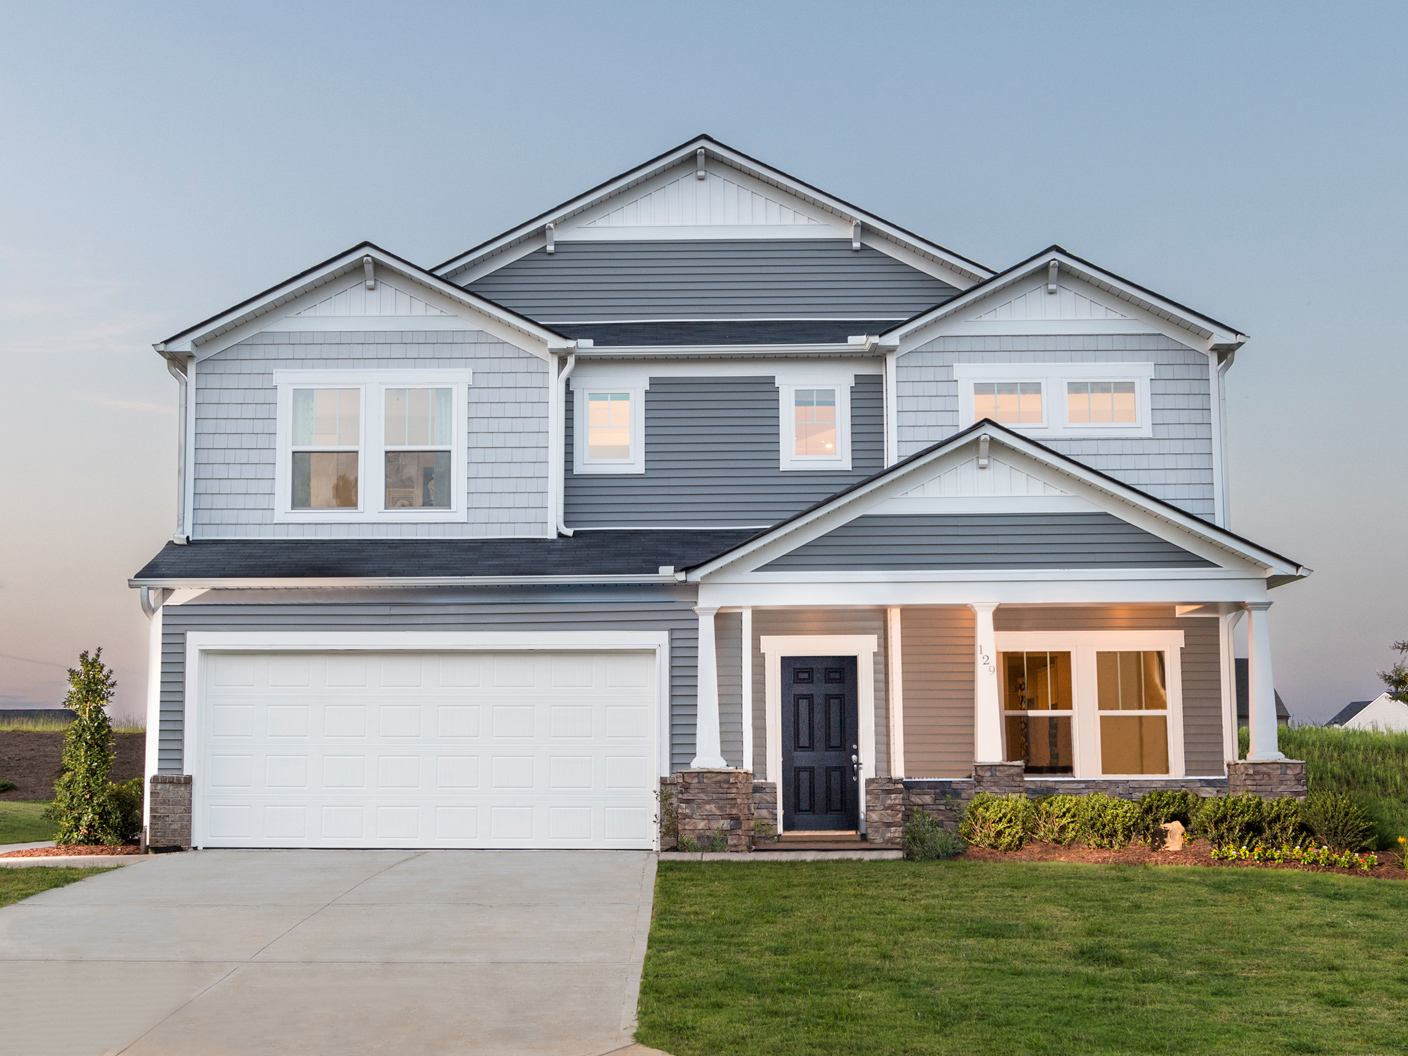 Hawthorne Ridge by Meritage Homes | New Homes for sale in